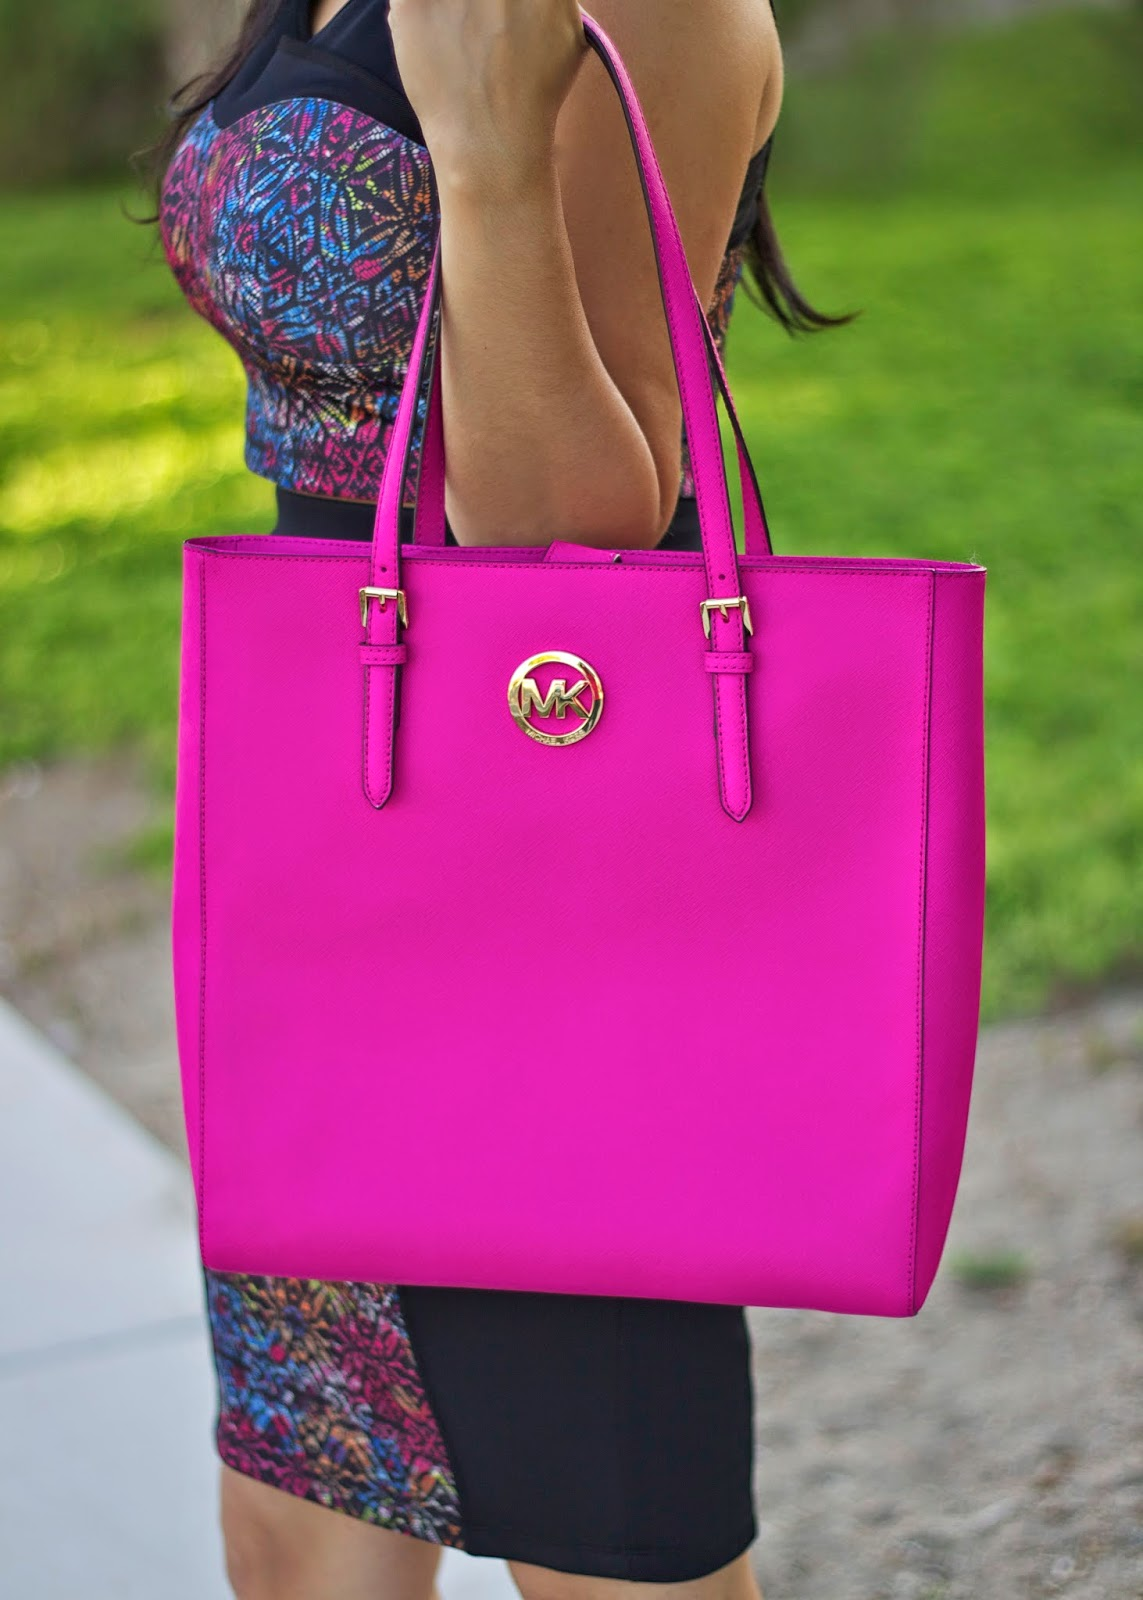 Hot Pink Michael Kors, how to wear a pink purse, how to wear a crop top and a pencil skirt, how to add a pop of color to outfit, ootd in San Diego, fashionweeksd, fashion week sd